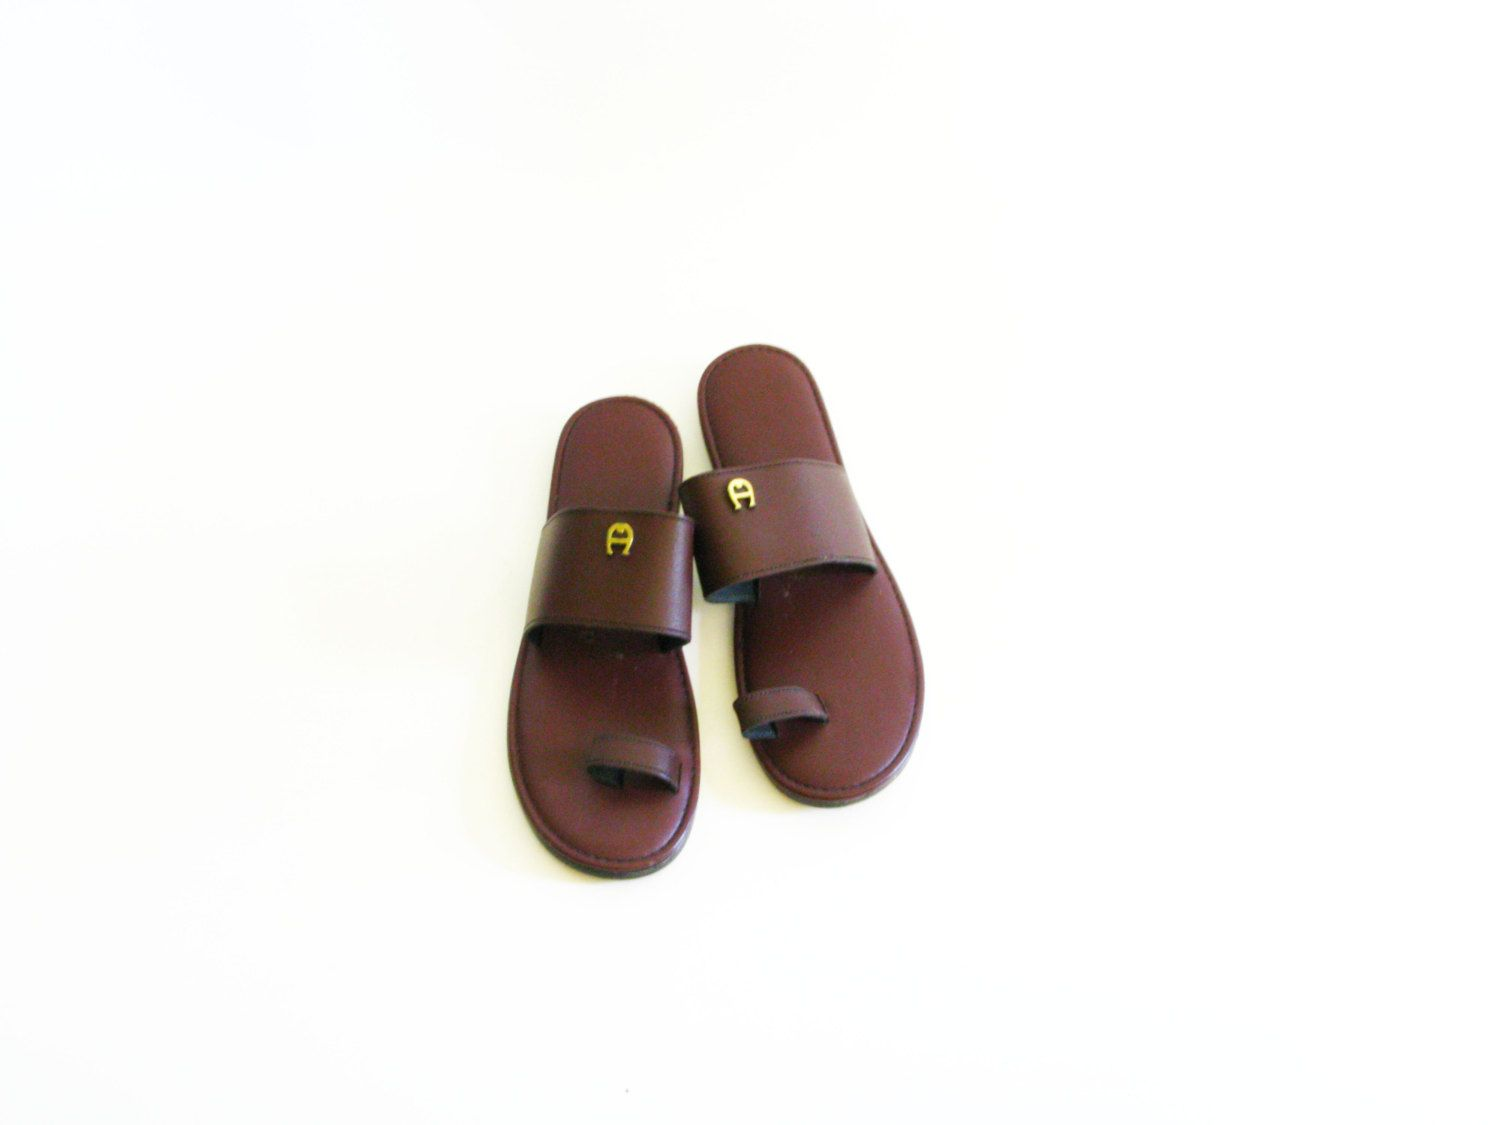 620abd38cc60 Vintage Etienne Aigner Leather Sandals...id wear these still today....felt  like clouds under your feet! -m3